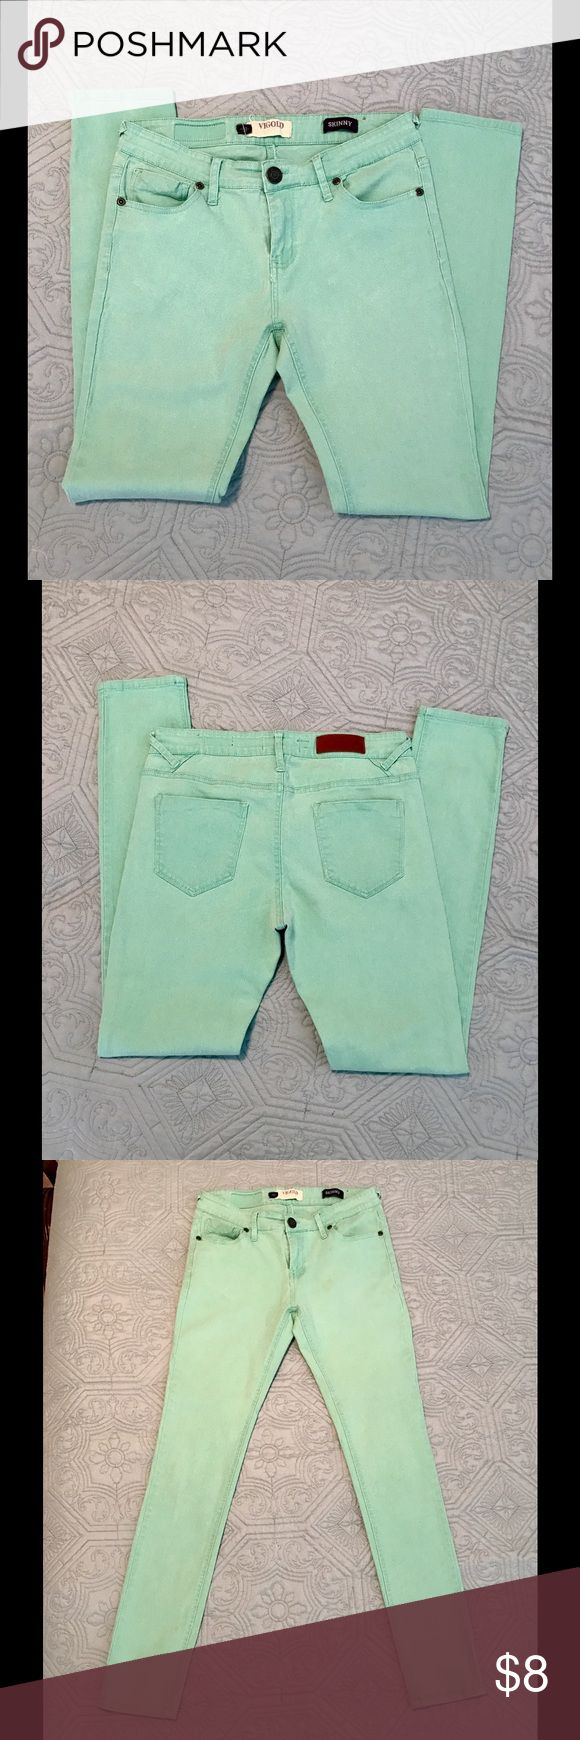 "🍹🍹Mint green skinny jeans 🍭🍭 Excellent pre-owned condition mint green skinny jeans. Perfect color for spring. 28"" inseam, 8"" rise. No stains, rips, holes, etc. Comes from a smoke free, pet free home. Vigold Jeans Skinny"